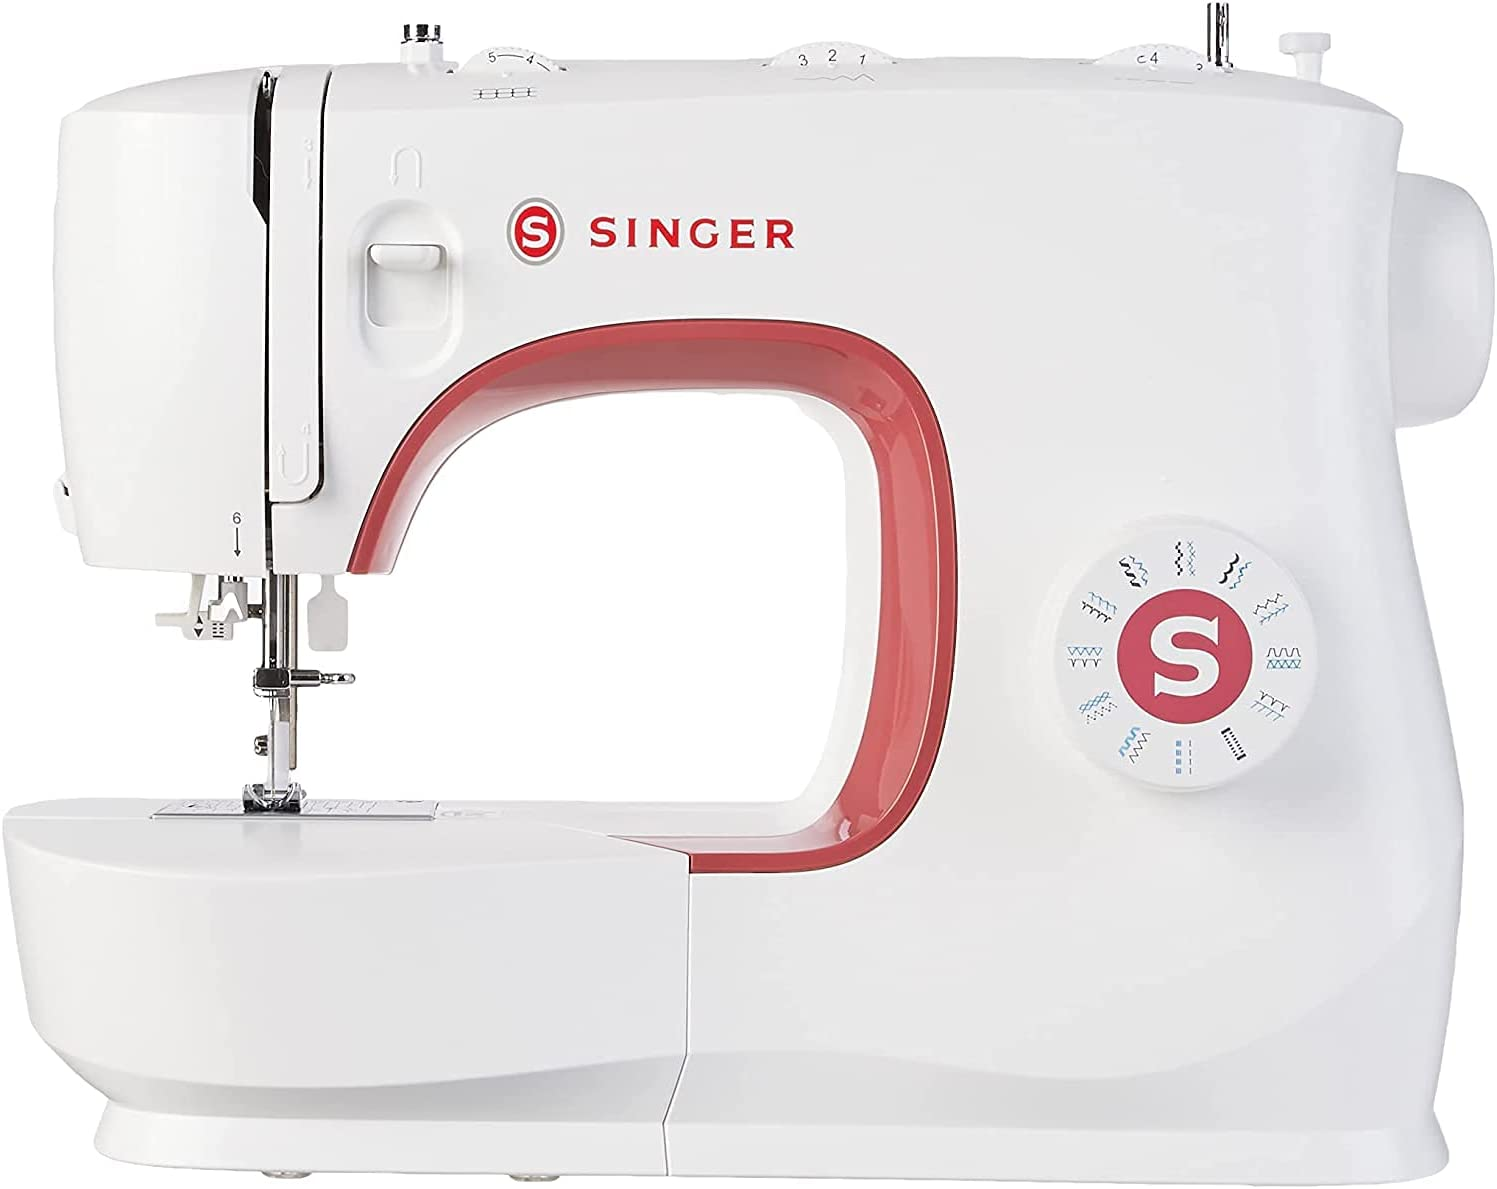 SINGER MX231 Sewing NEW Large Machine White Max 76% OFF